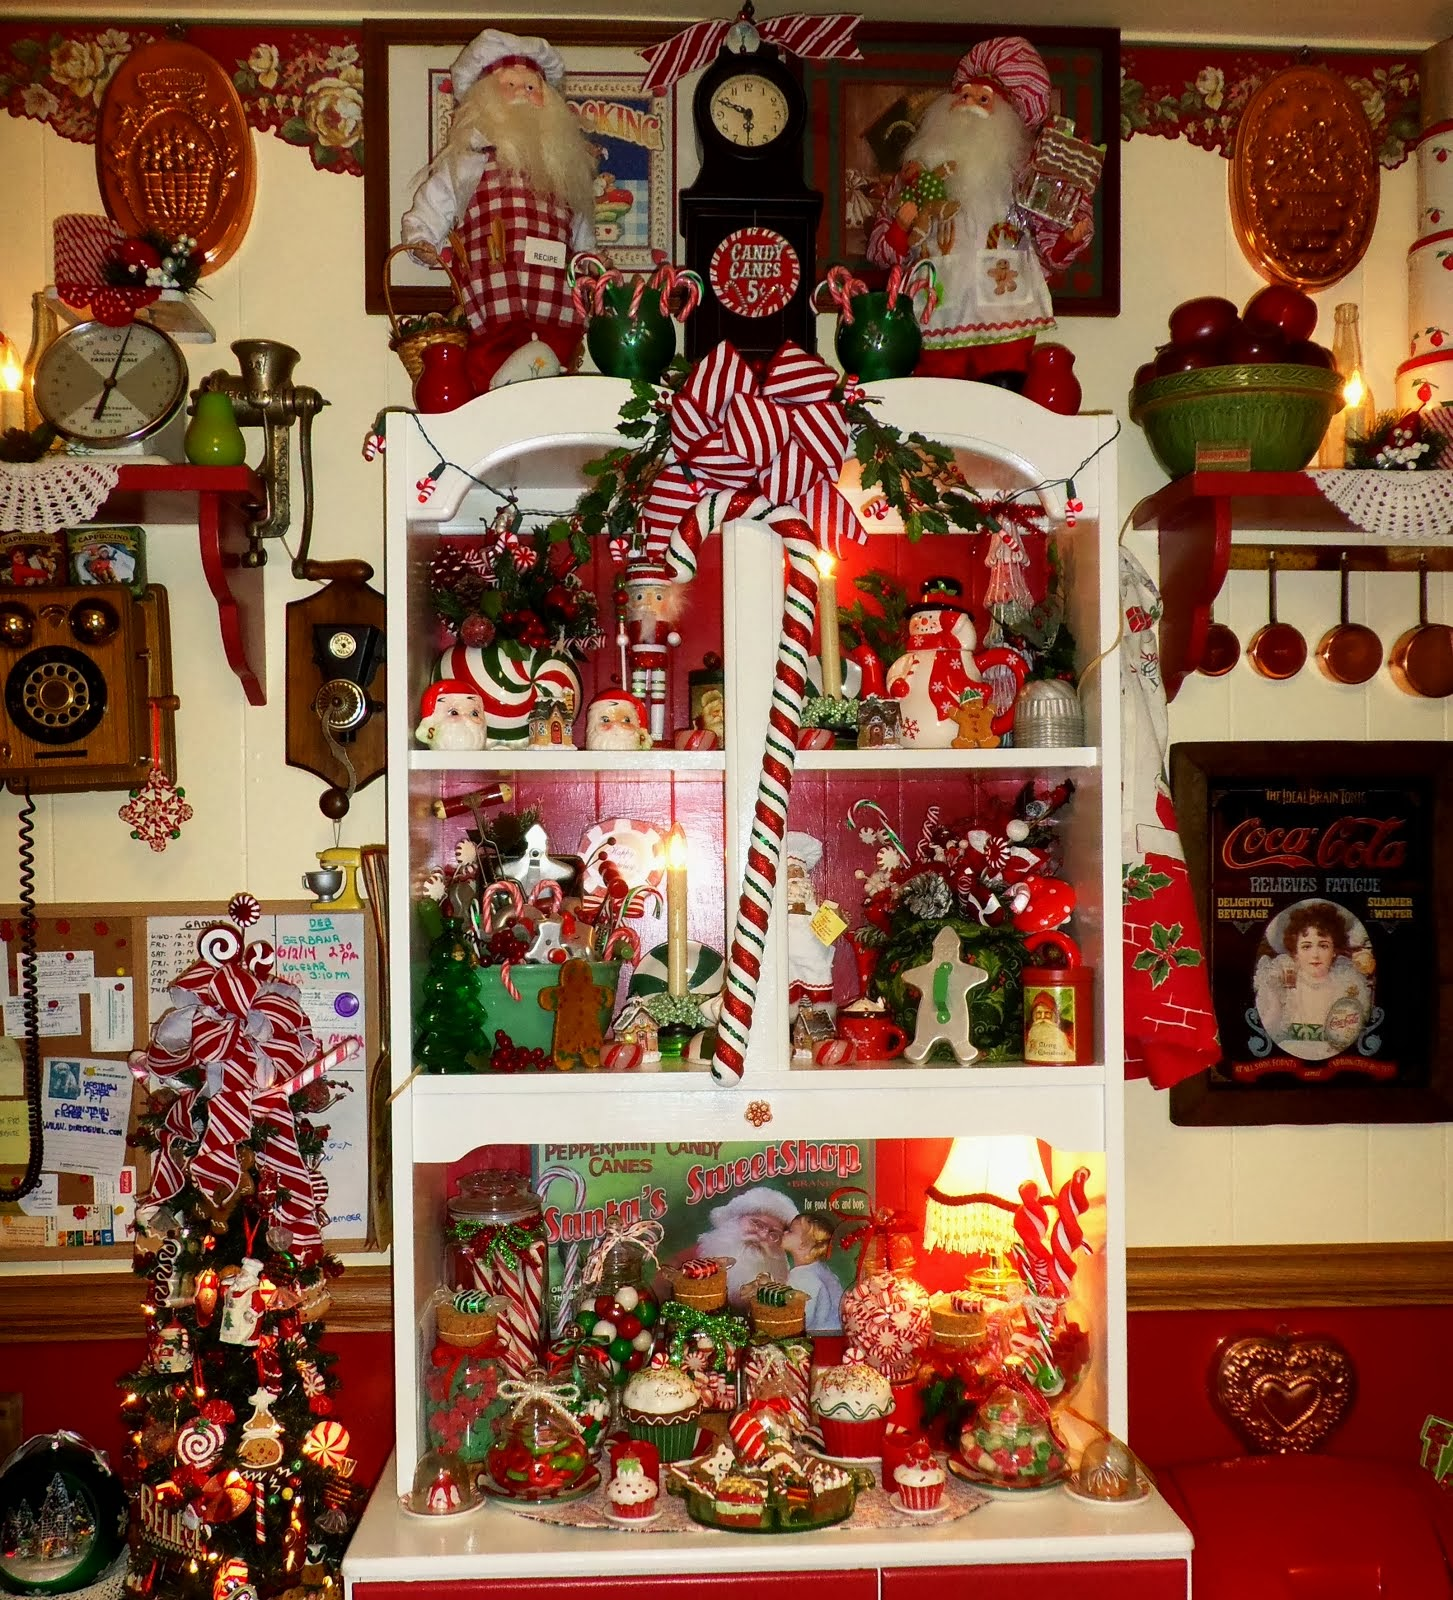 Christmas Home Tour 2013: A Candy Christmas Kitchen